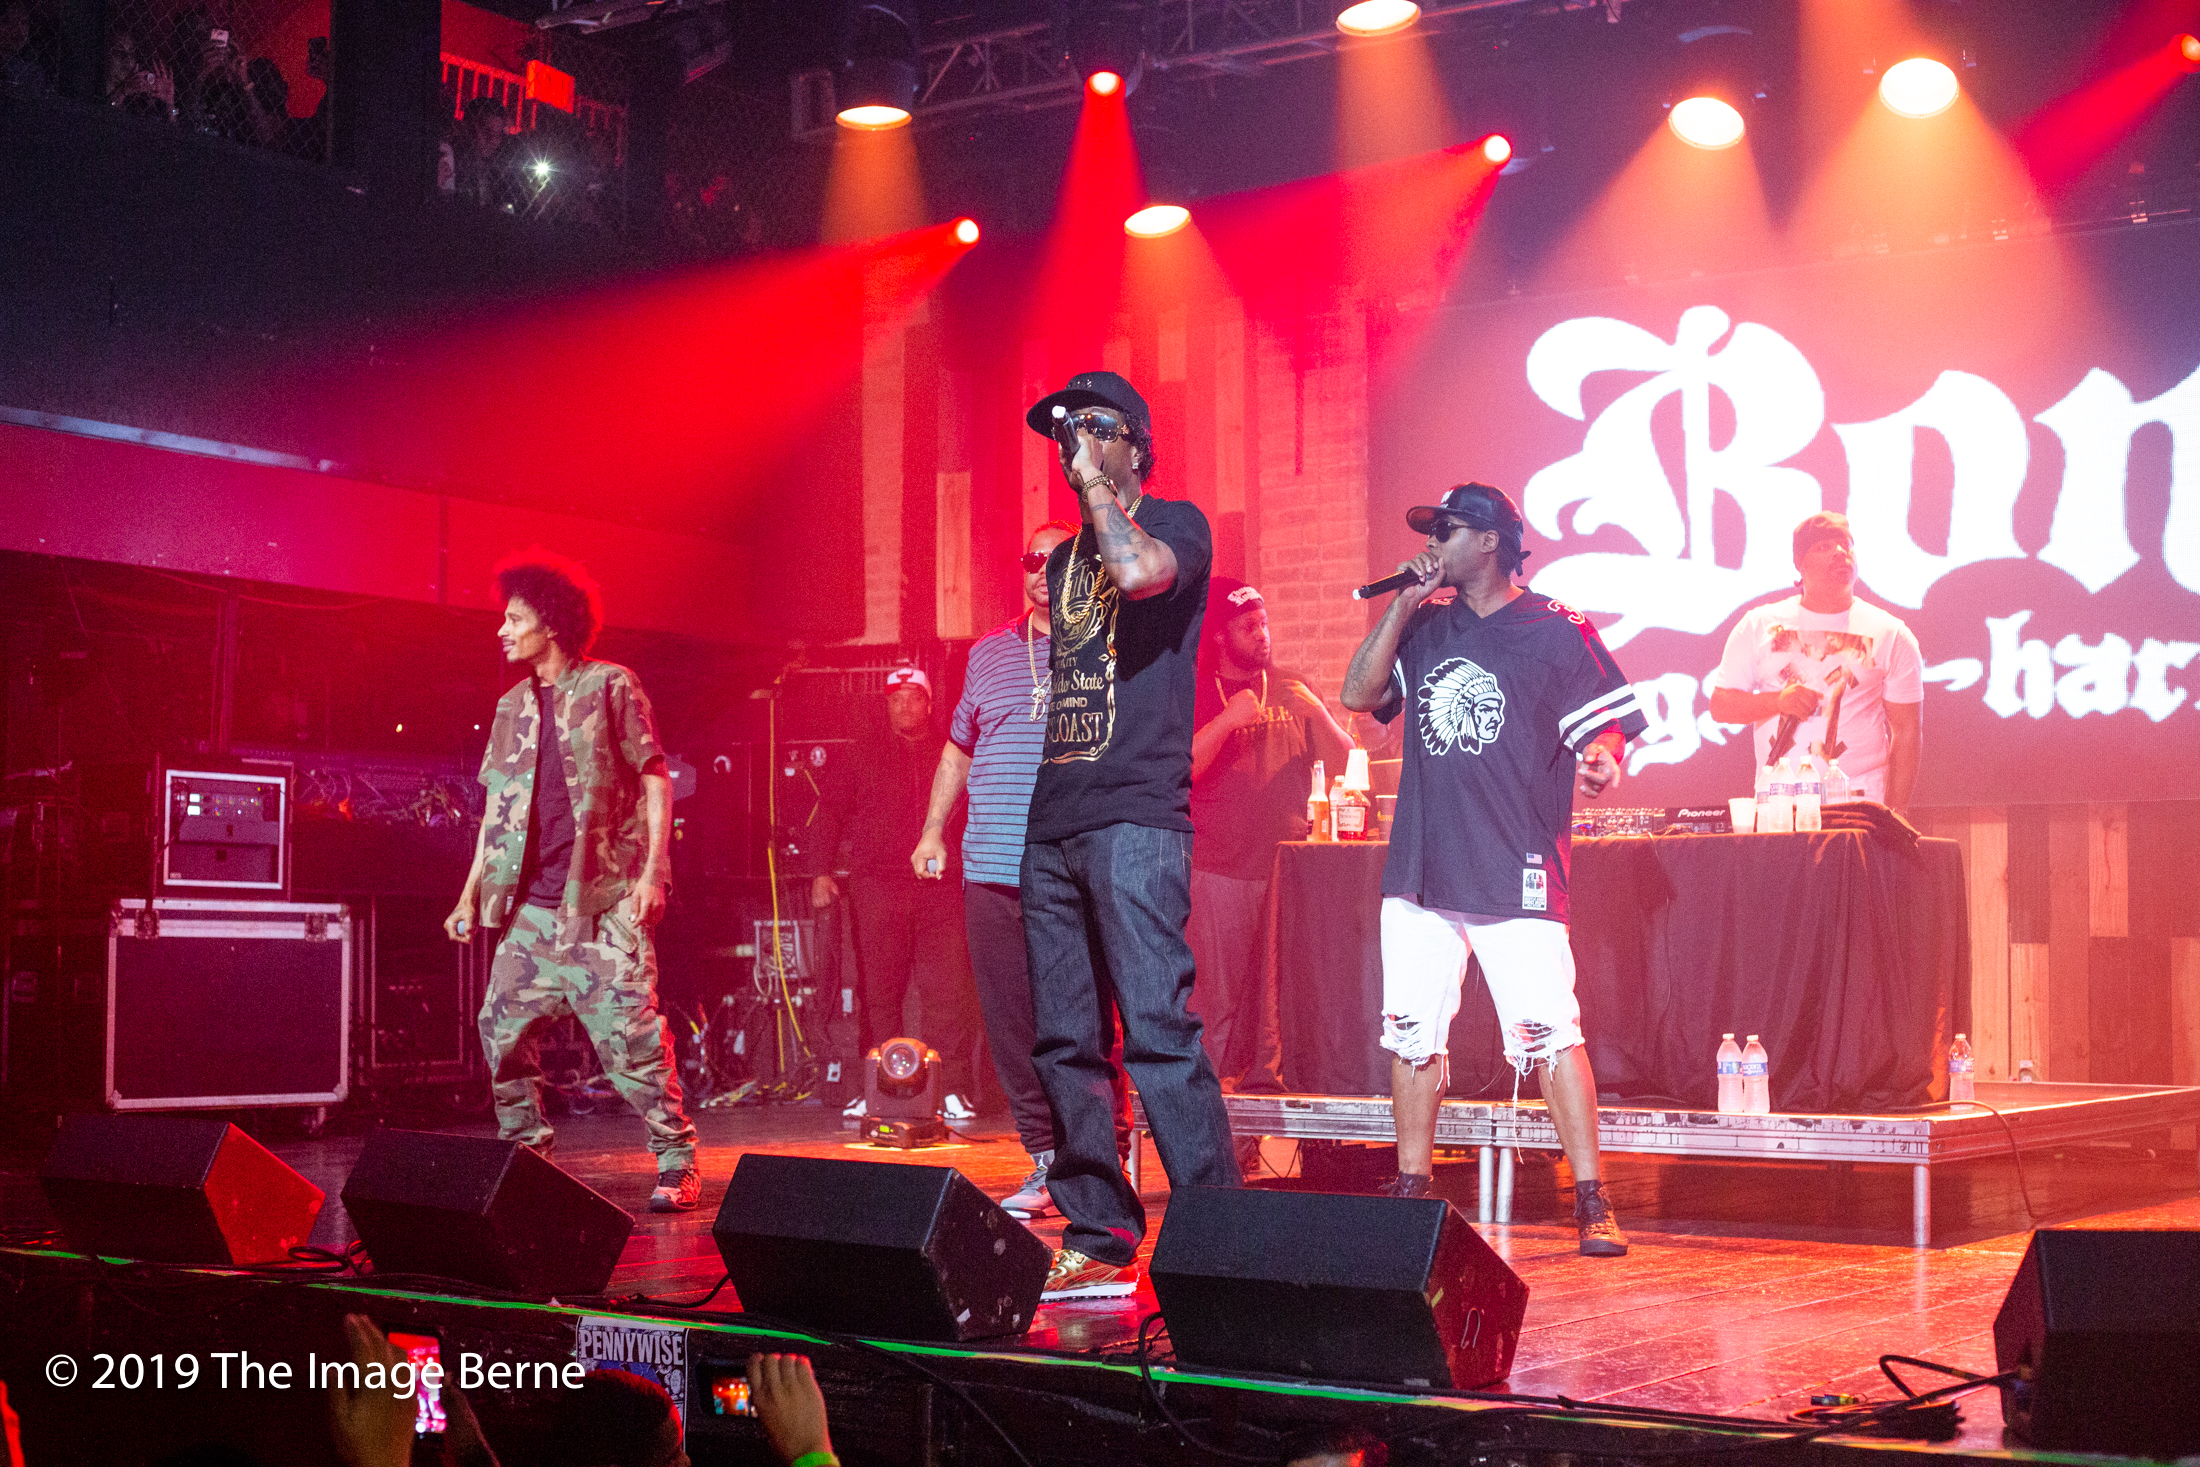 Krayzie Bone, Wish Bone, Flesh-N-Bone, Layzie Bone, and Bizzy Bone-060.jpg